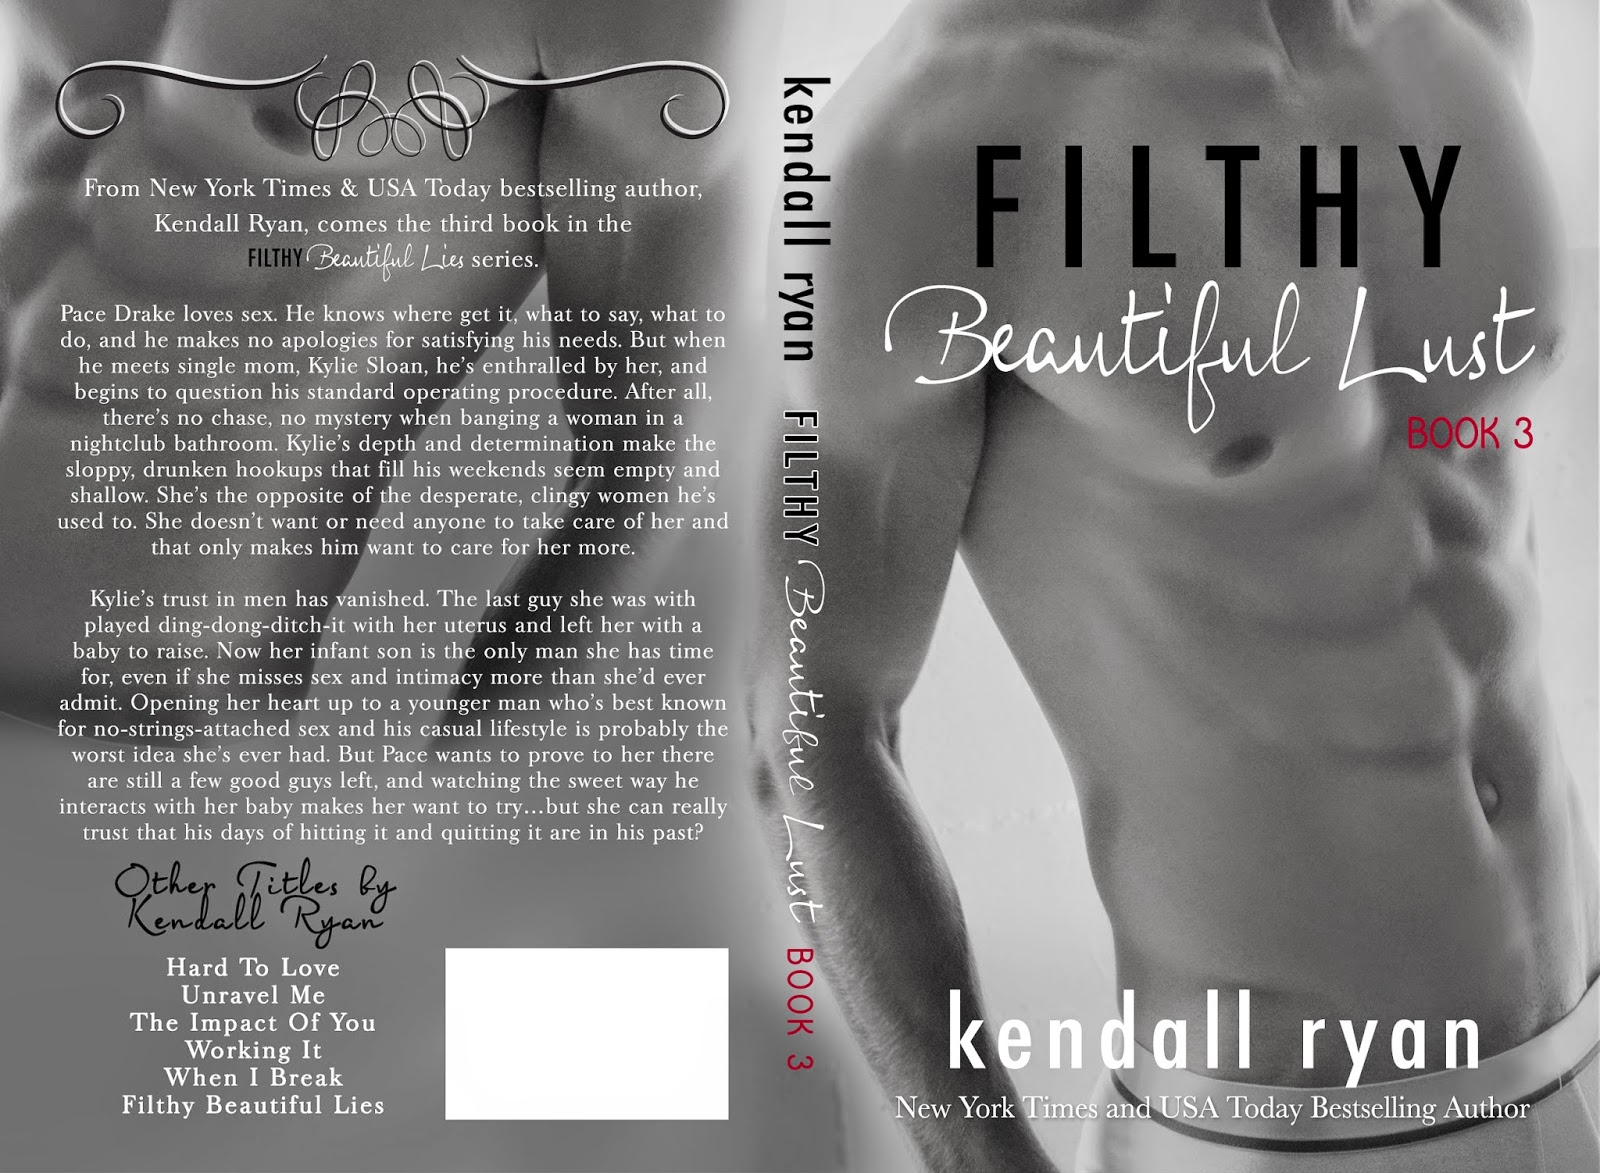 Kendall Ryan Libros Grownup Fangirl Cover Reveal Filthy Beautiful Lust By Kendall Ryan